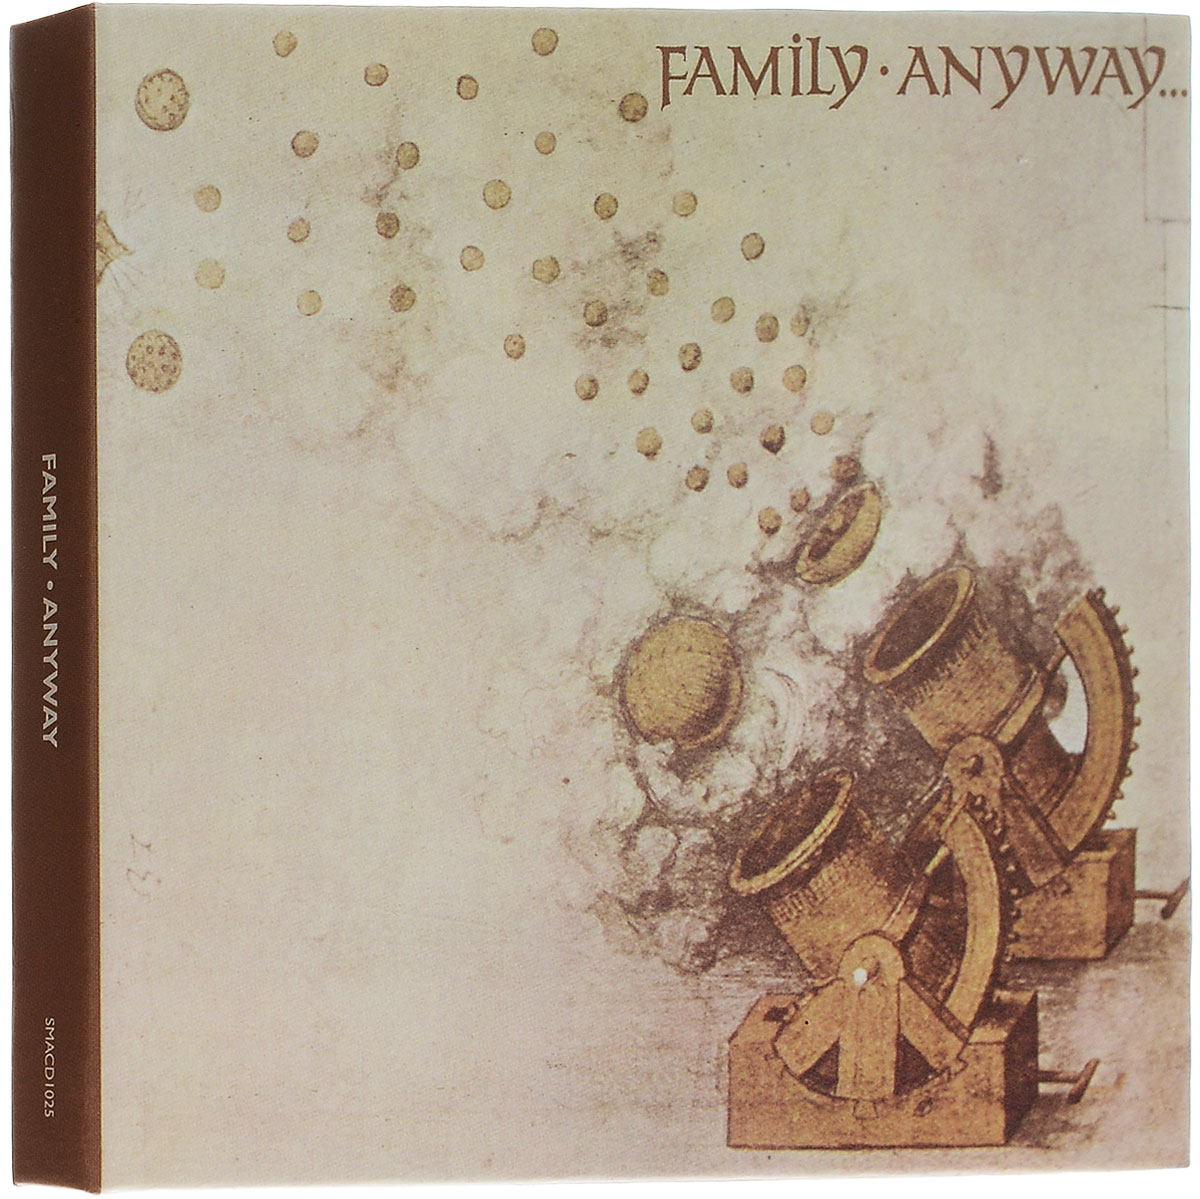 Family Family. Anyway... (2 CD) anyway